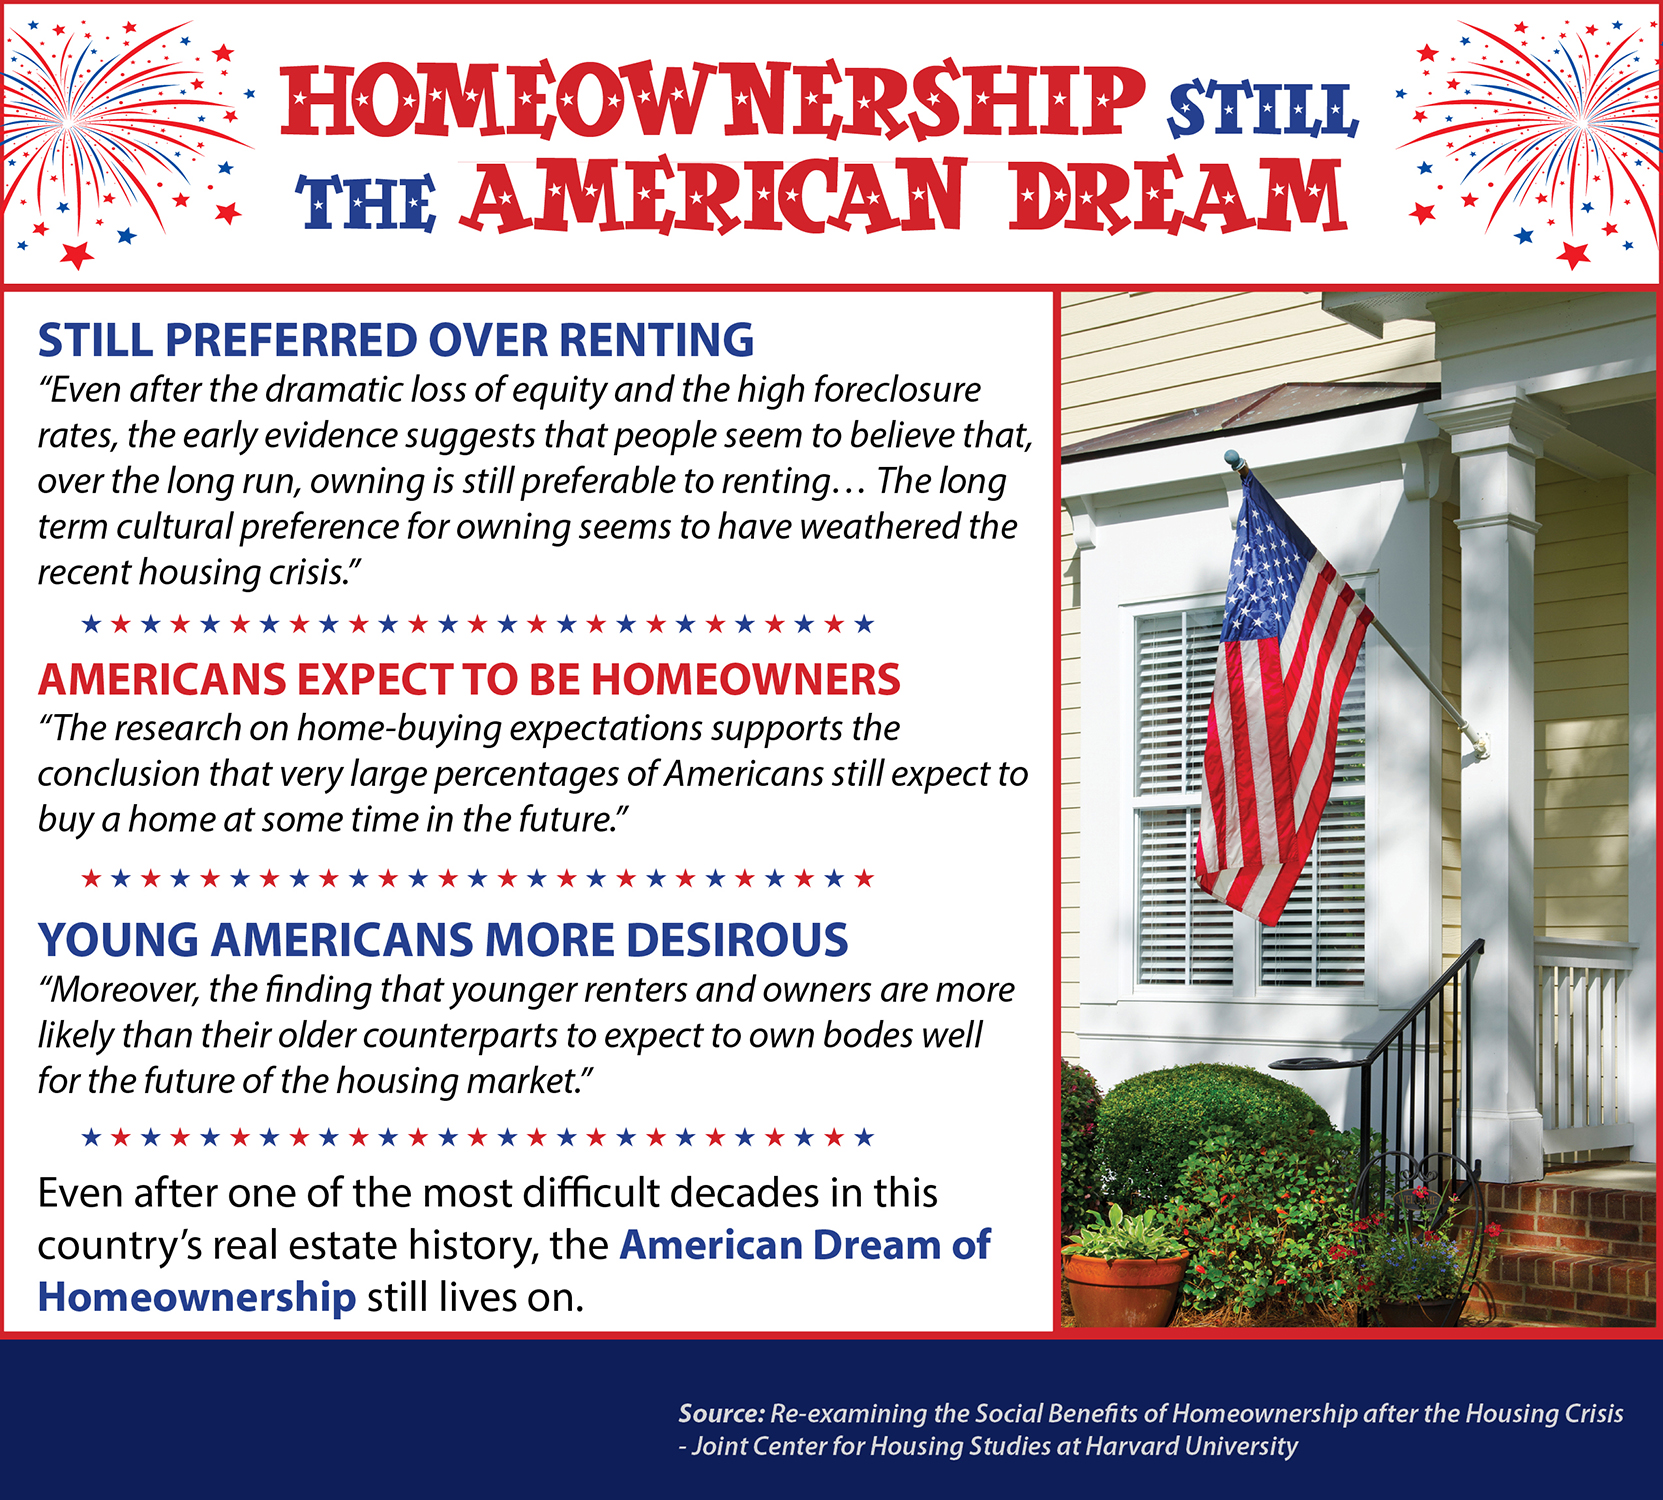 Homeownership Still The American Dream | Keeping Current Matters